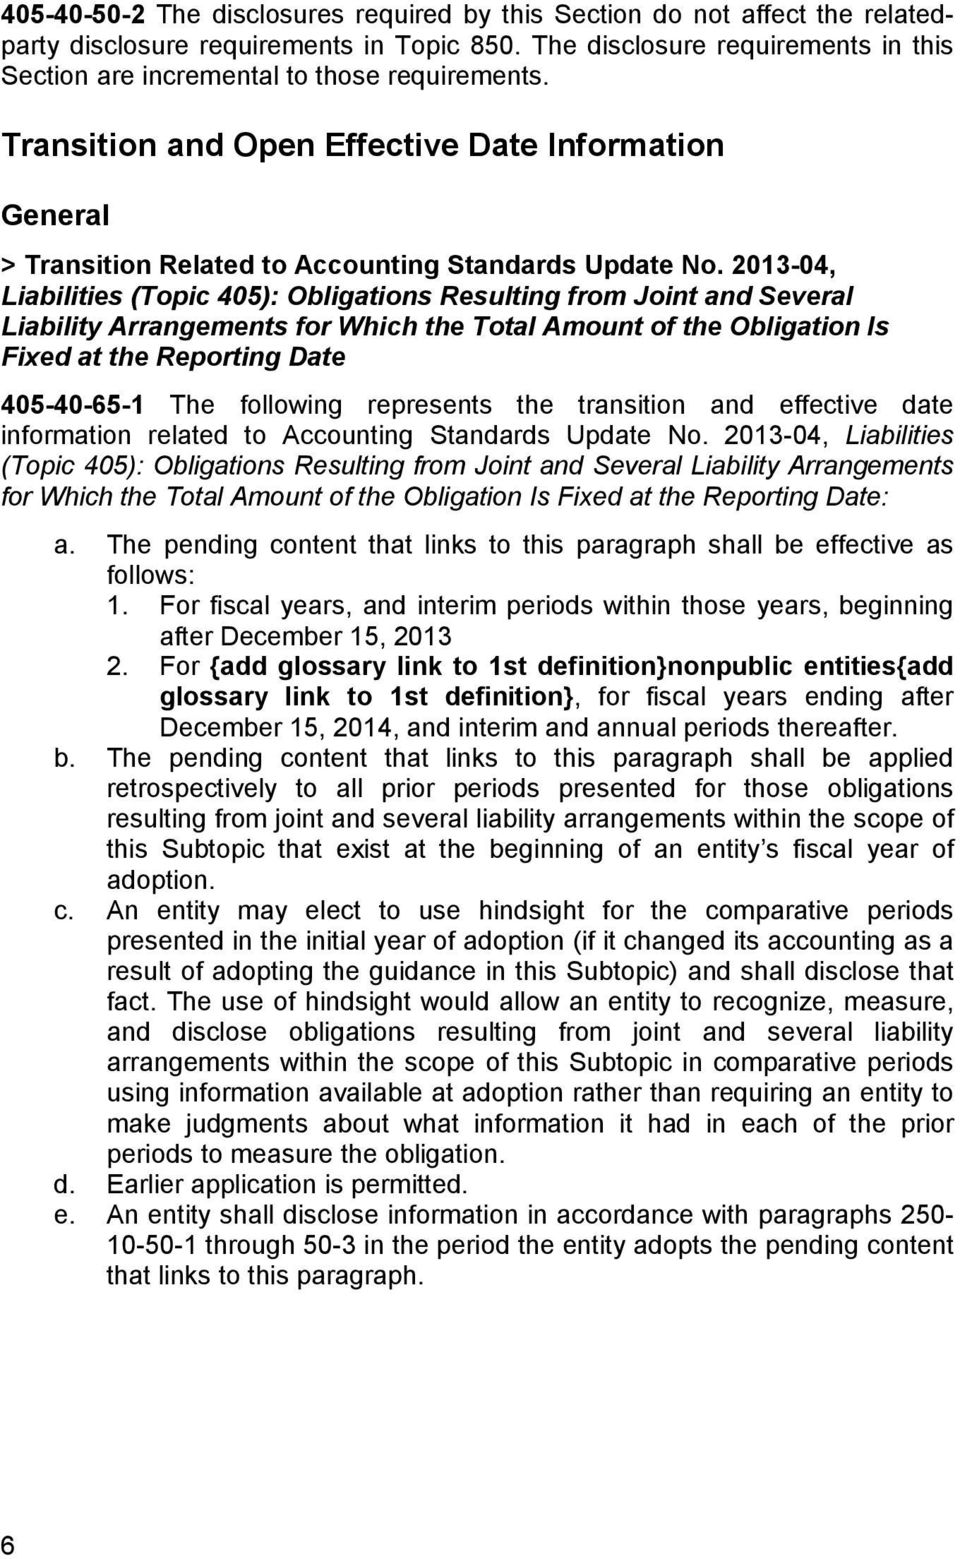 2013-04, Liabilities (Topic 405): Obligations Resulting from Joint and Several Liability Arrangements for Which the Total Amount of the Obligation Is Fixed at the Reporting Date 405-40-65-1 The